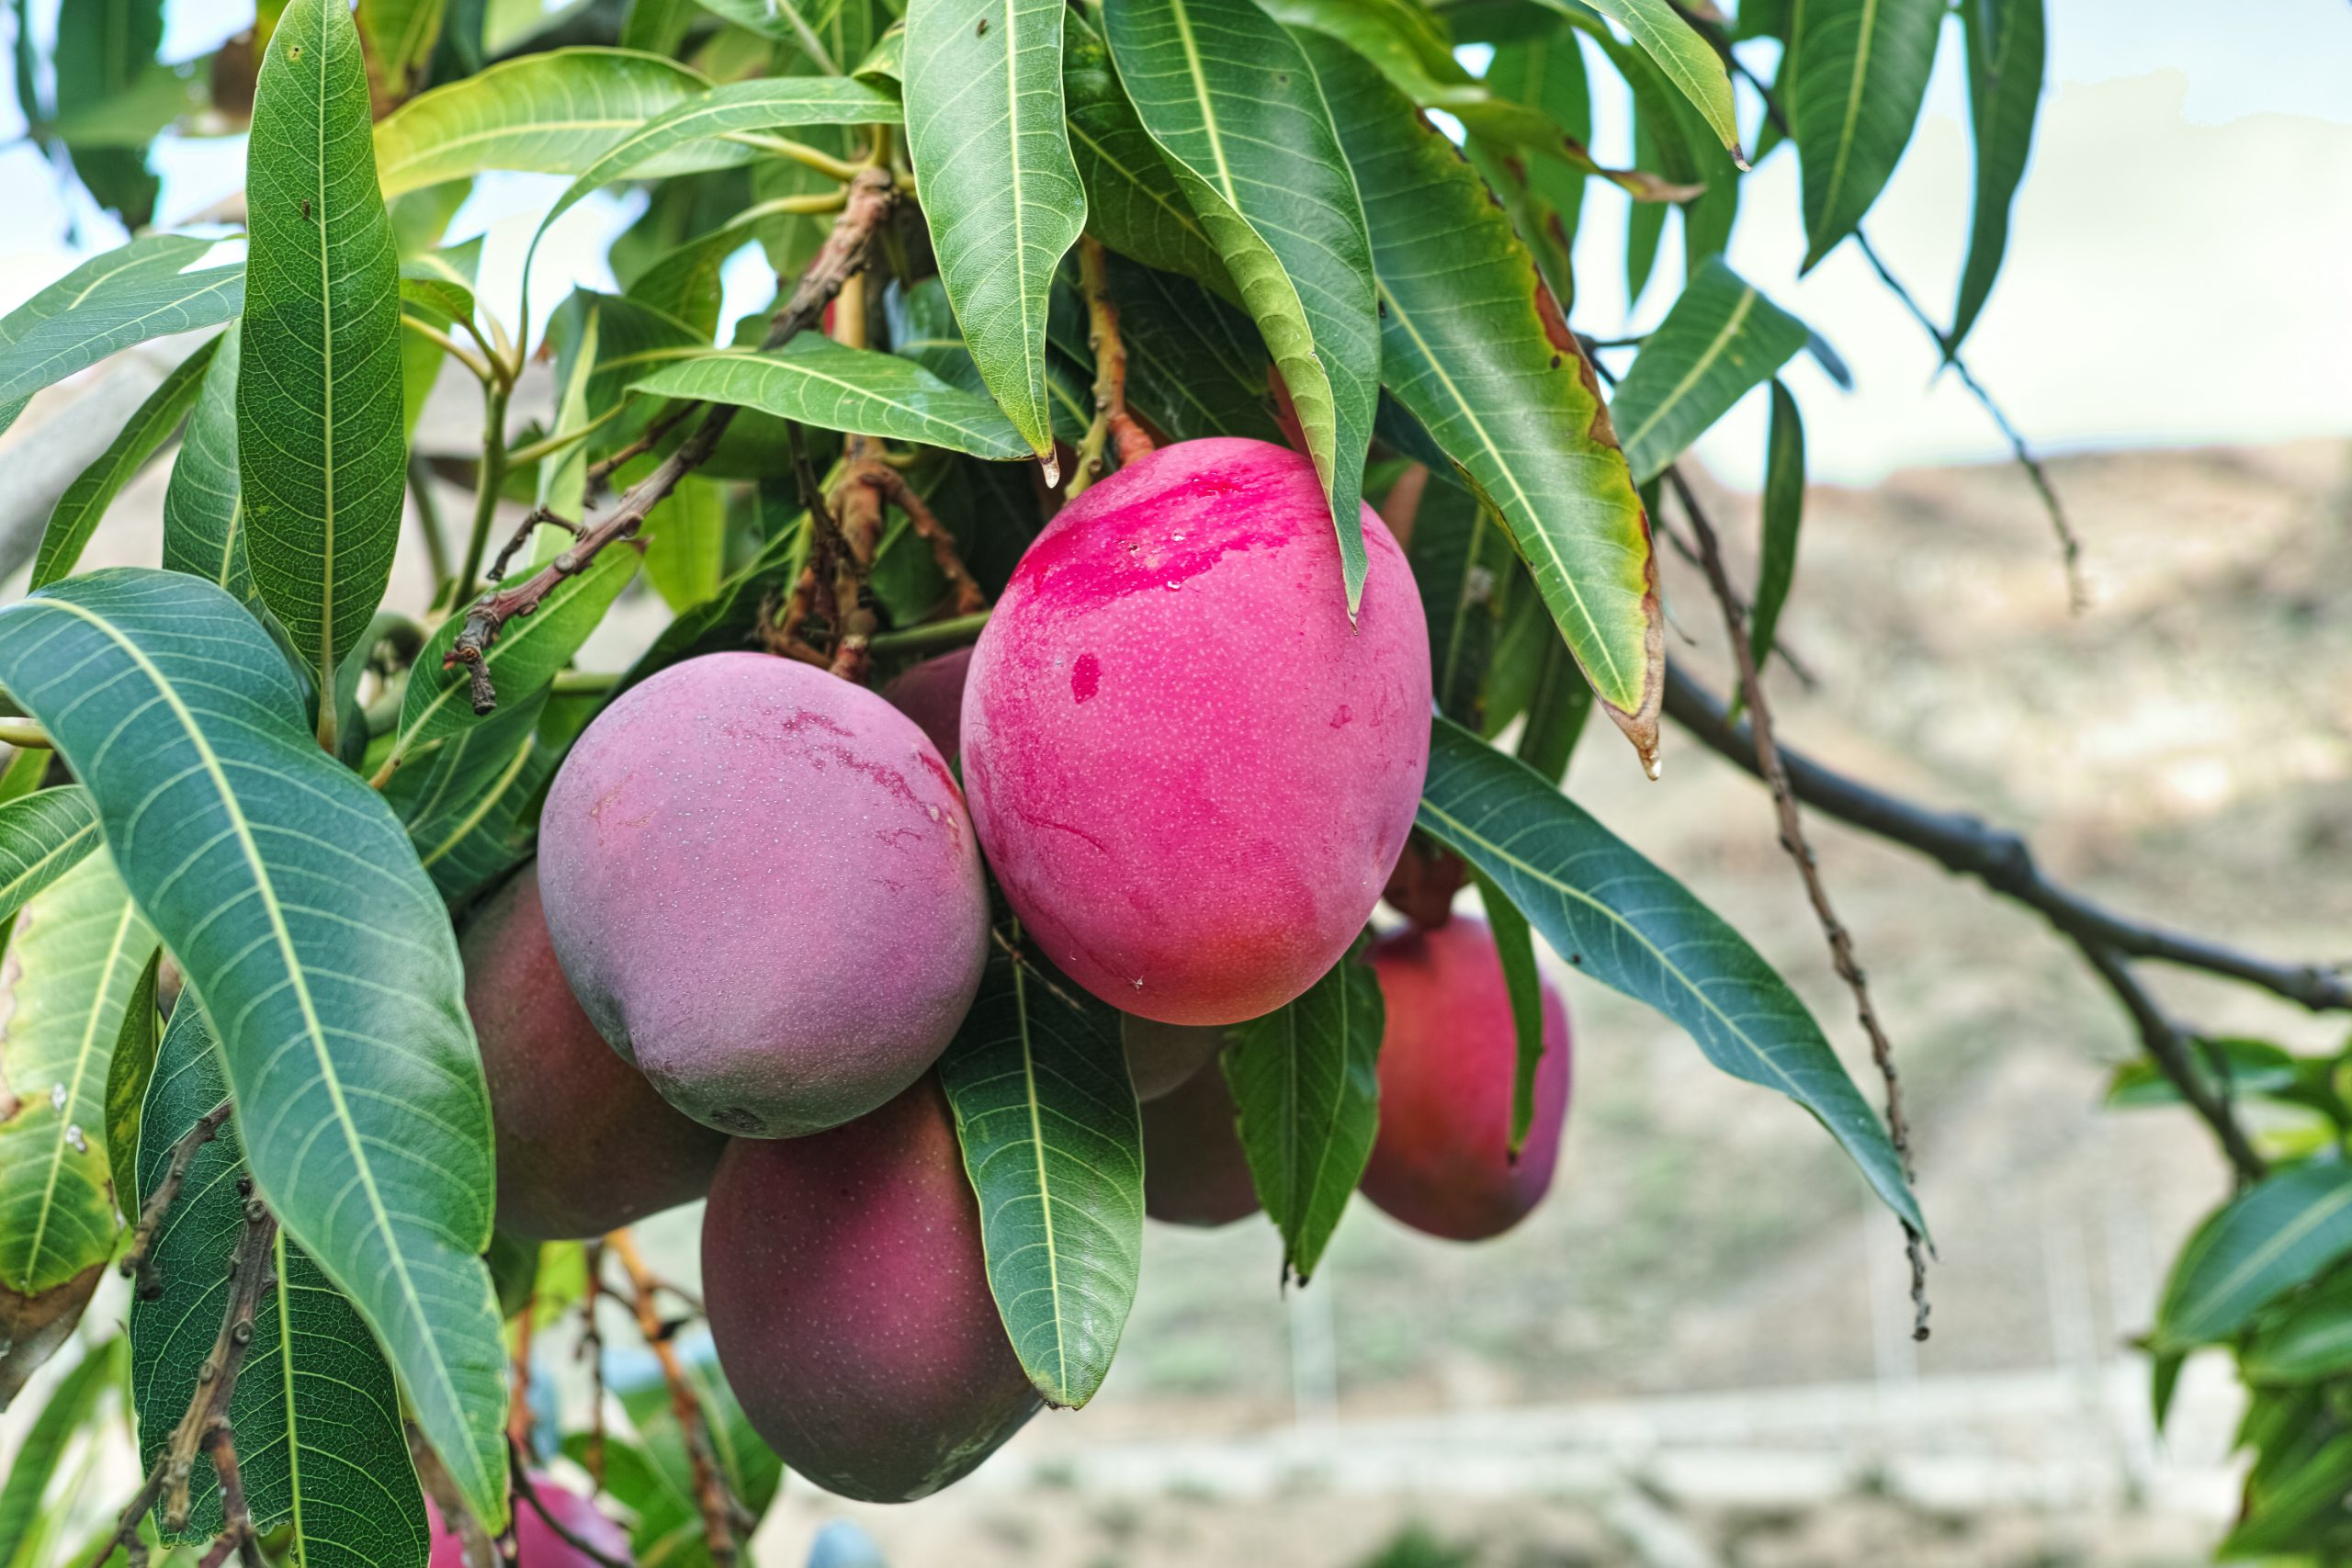 Tropical mango tree with big ripe mango fruits growing in orchard on Gran Canaria island, Spain. Cultivation of mango fruits on plantation.